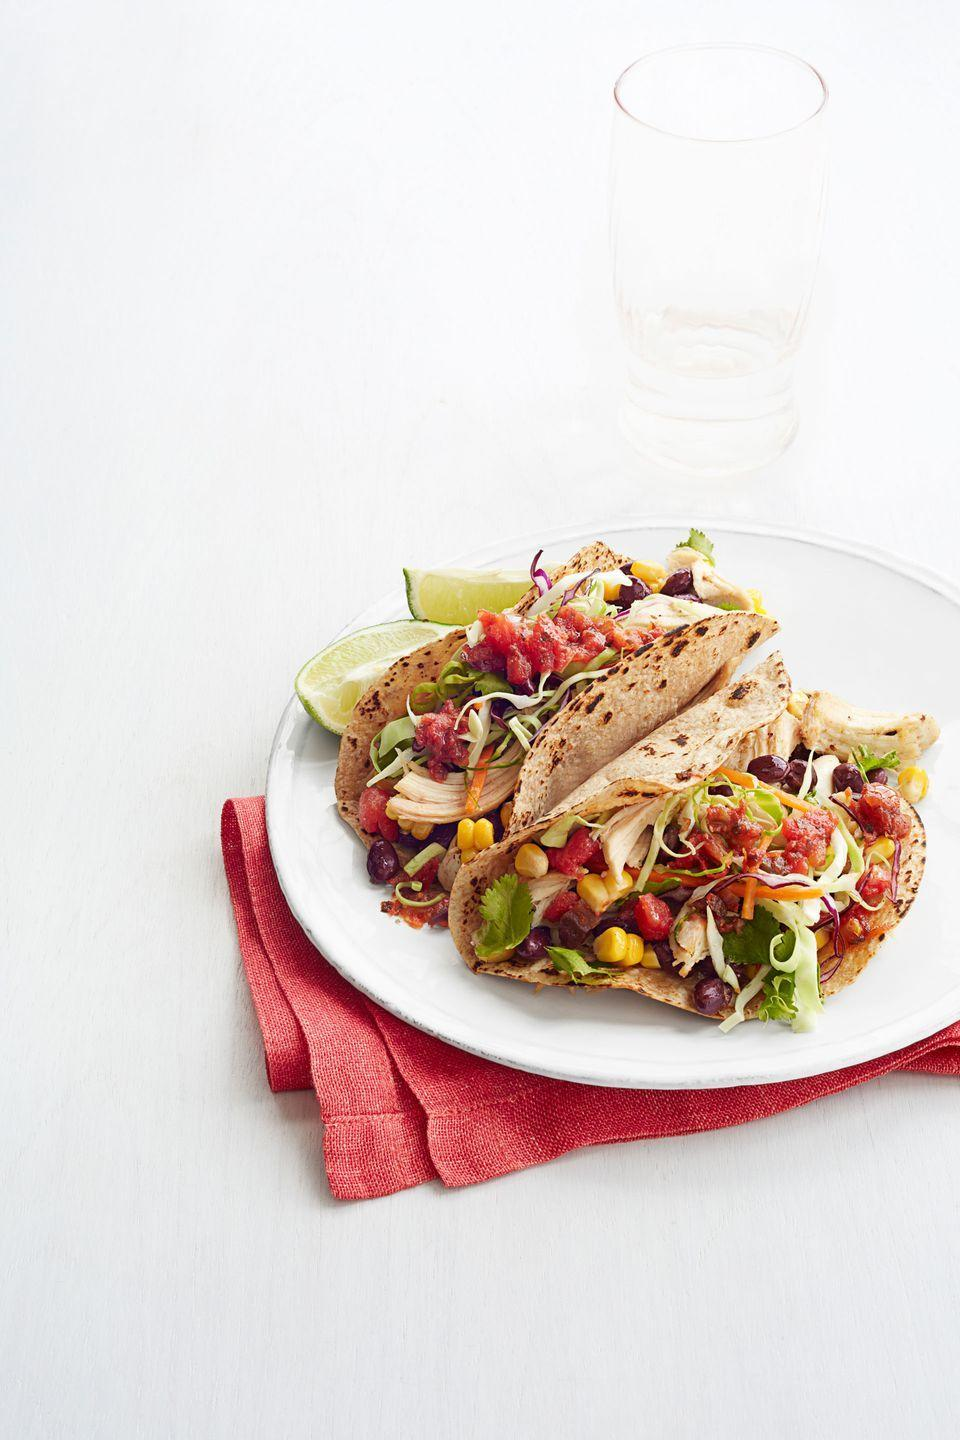 "<p>Forget Taco Tuesday! Serve up these quickie, chicken tacos any night of the week. </p><p><a href=""https://www.goodhousekeeping.com/food-recipes/a14538/super-speedy-chicken-tacos-recipe-ghk0214/"" rel=""nofollow noopener"" target=""_blank"" data-ylk=""slk:Get the recipe for Super-Speedy Chicken Tacos »"" class=""link rapid-noclick-resp""><em>Get the recipe for Super-Speedy Chicken Tacos »</em></a> </p>"